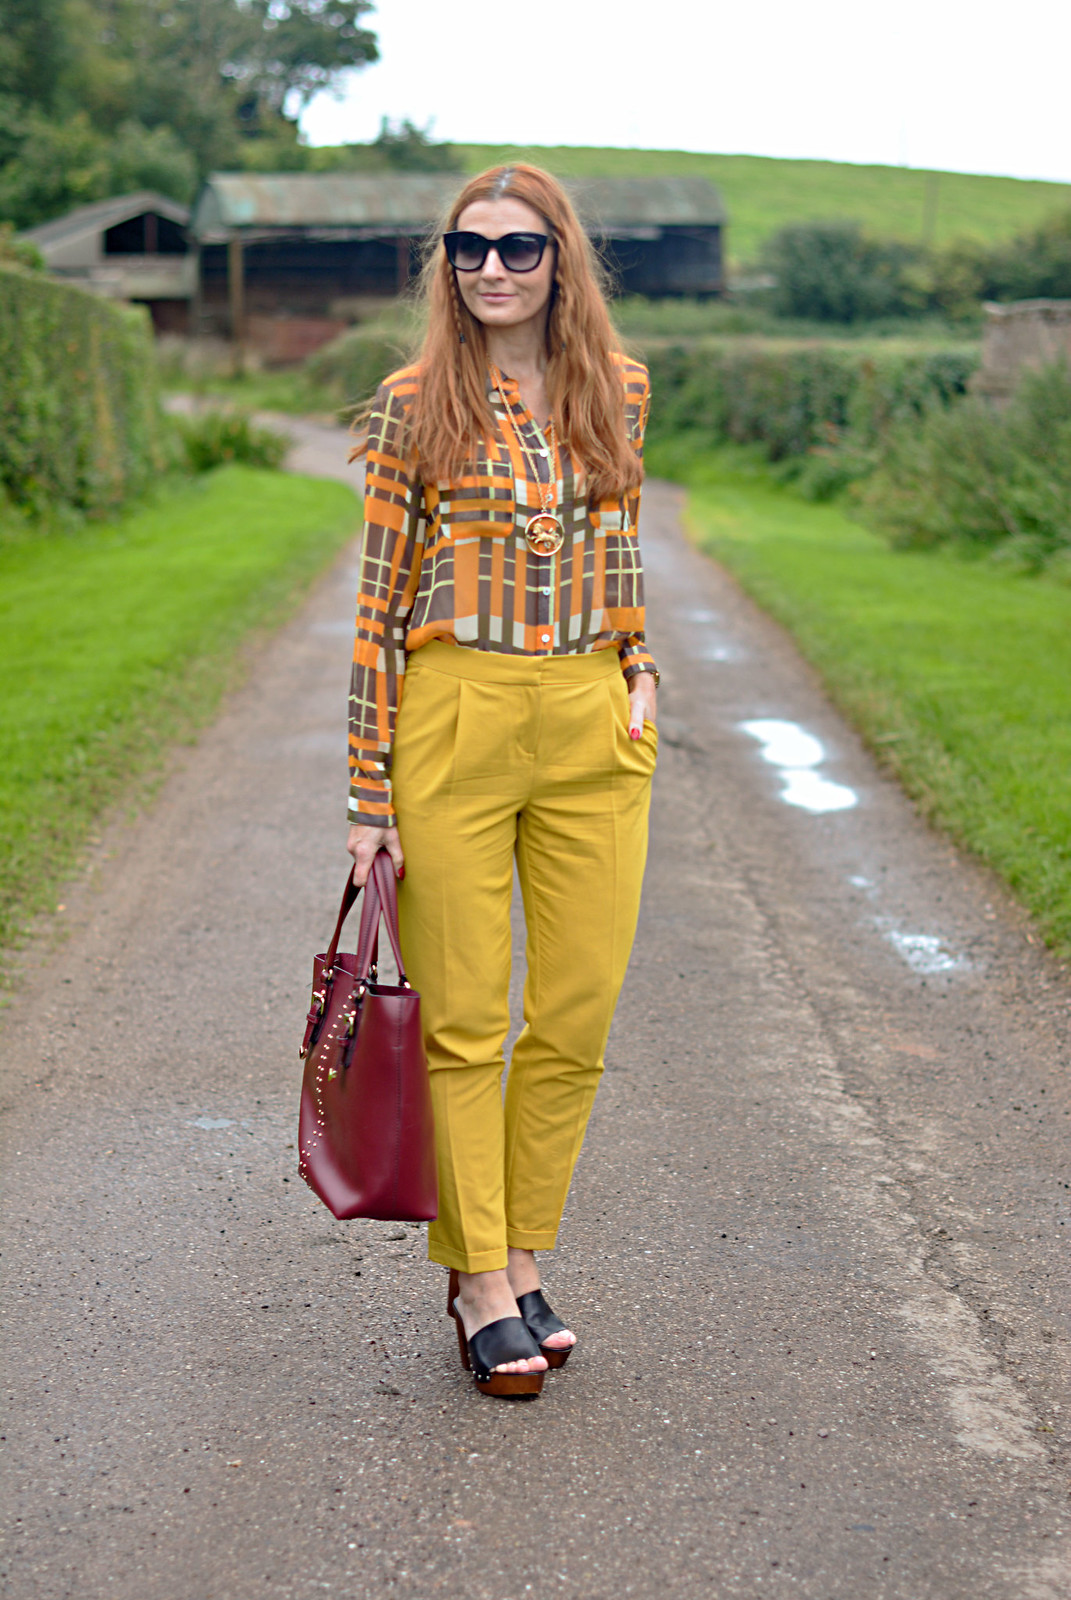 Autumnal style | Sheer plaid shirt, mustard trousers, deep red bucket bag